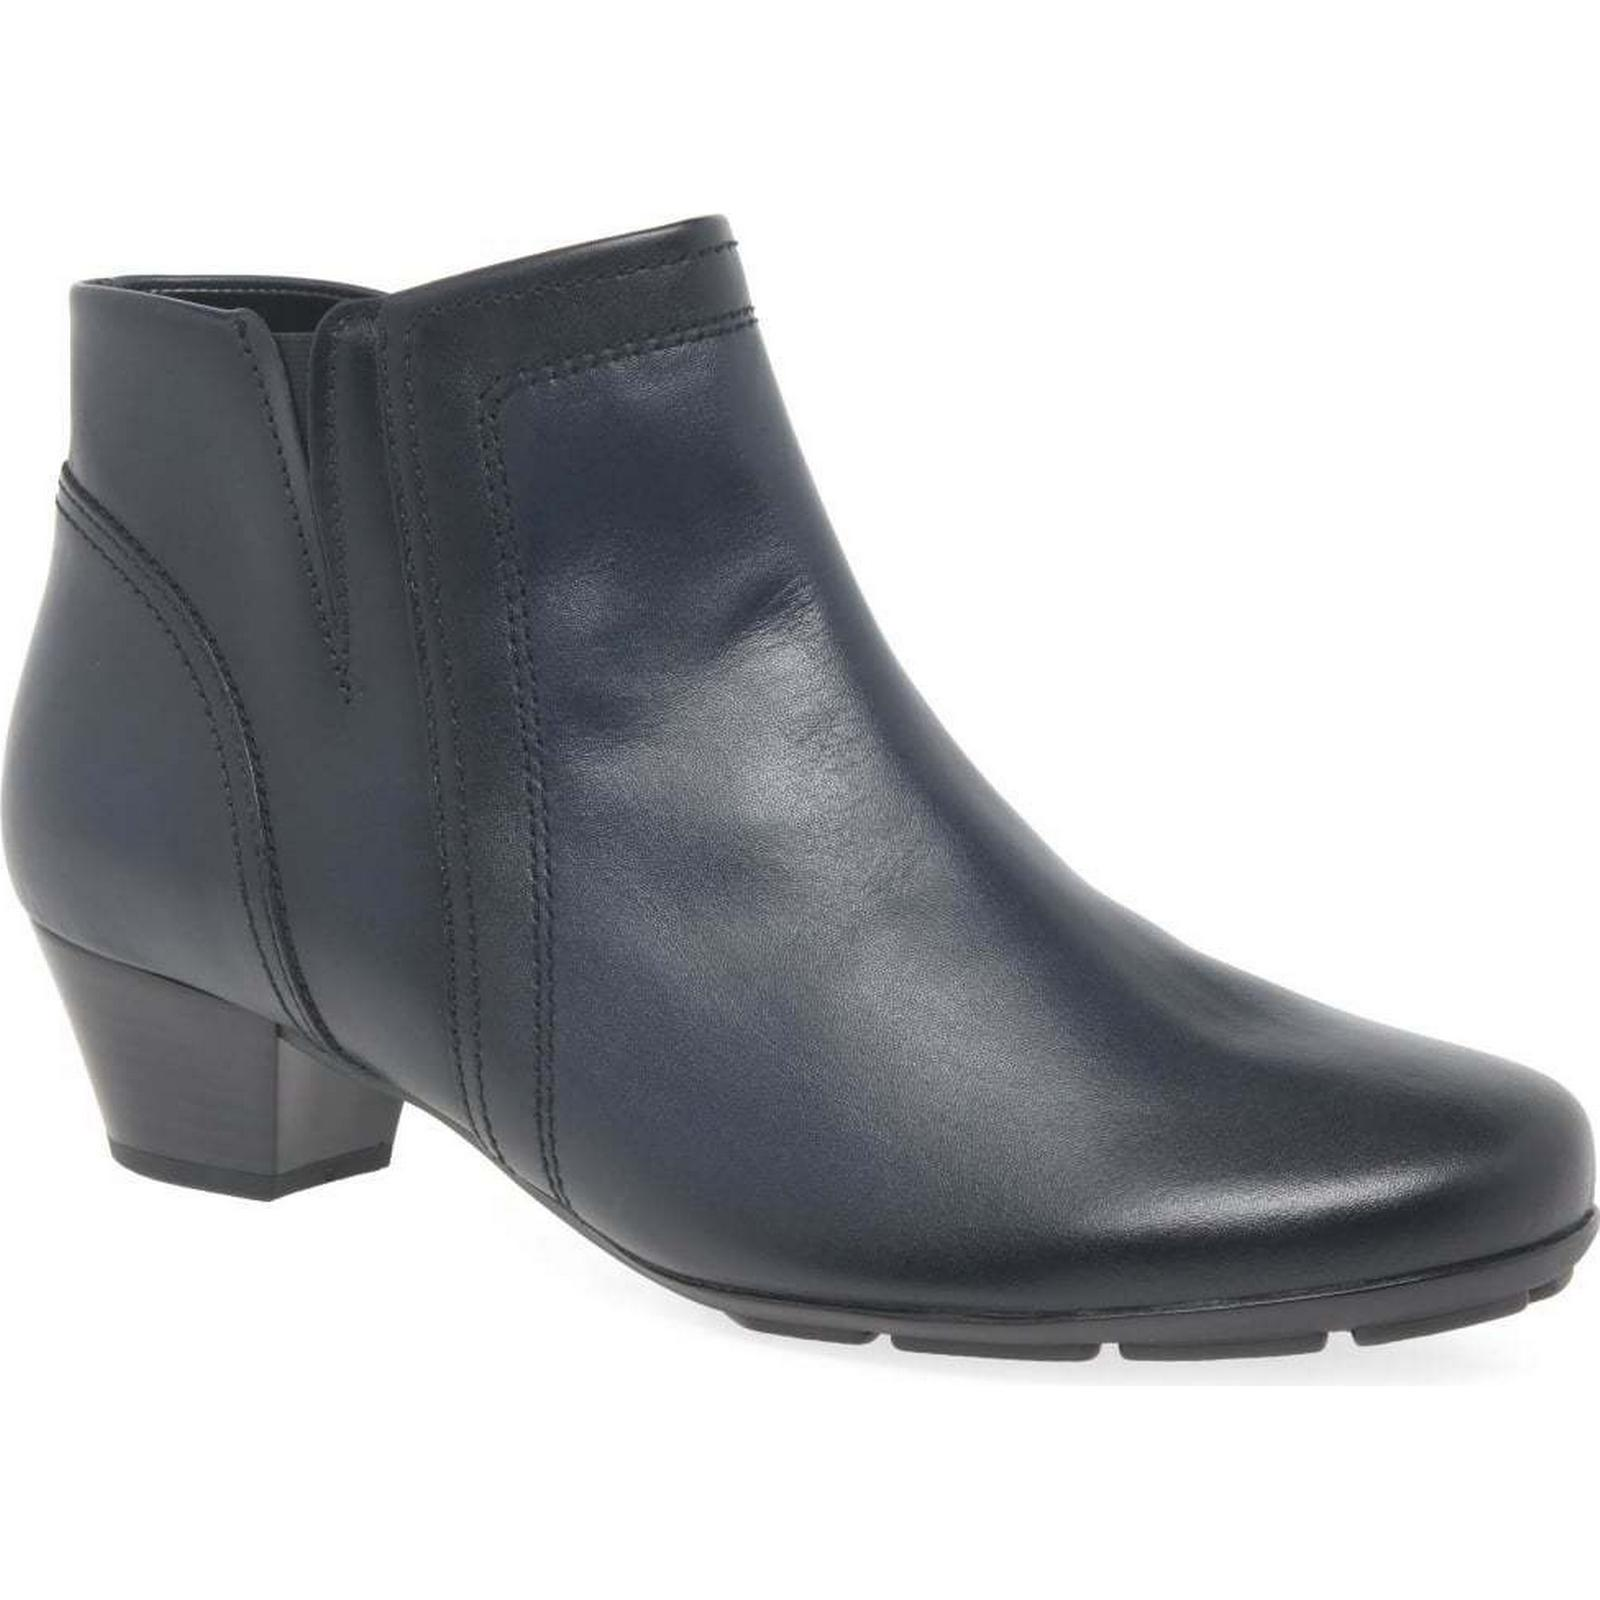 Gabor Boots Heritage Womens Modern Ankle Boots Gabor Colour: River, Size: 3.5 993f05